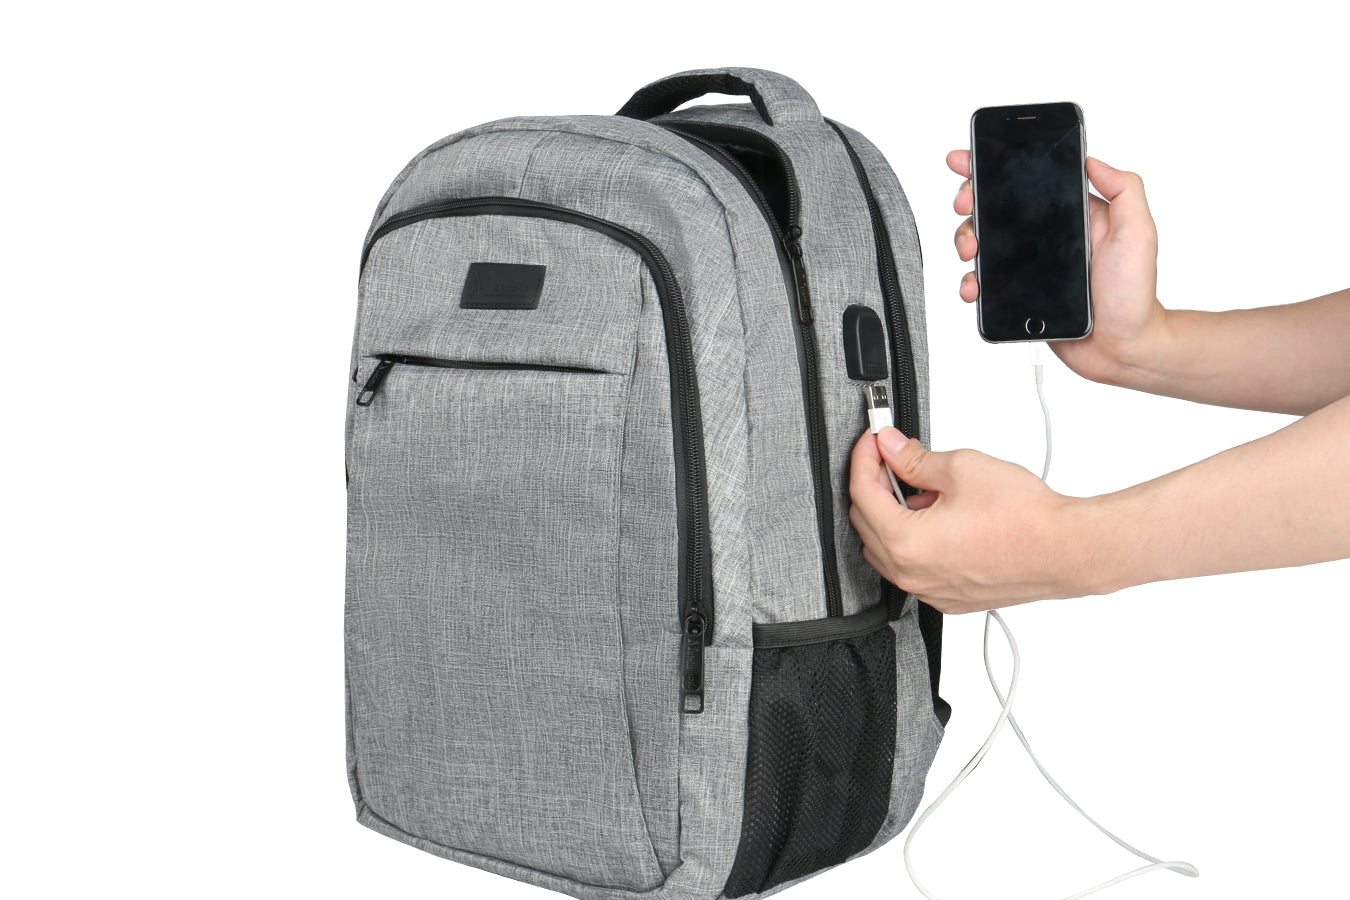 How to use Maten Backpack USB port